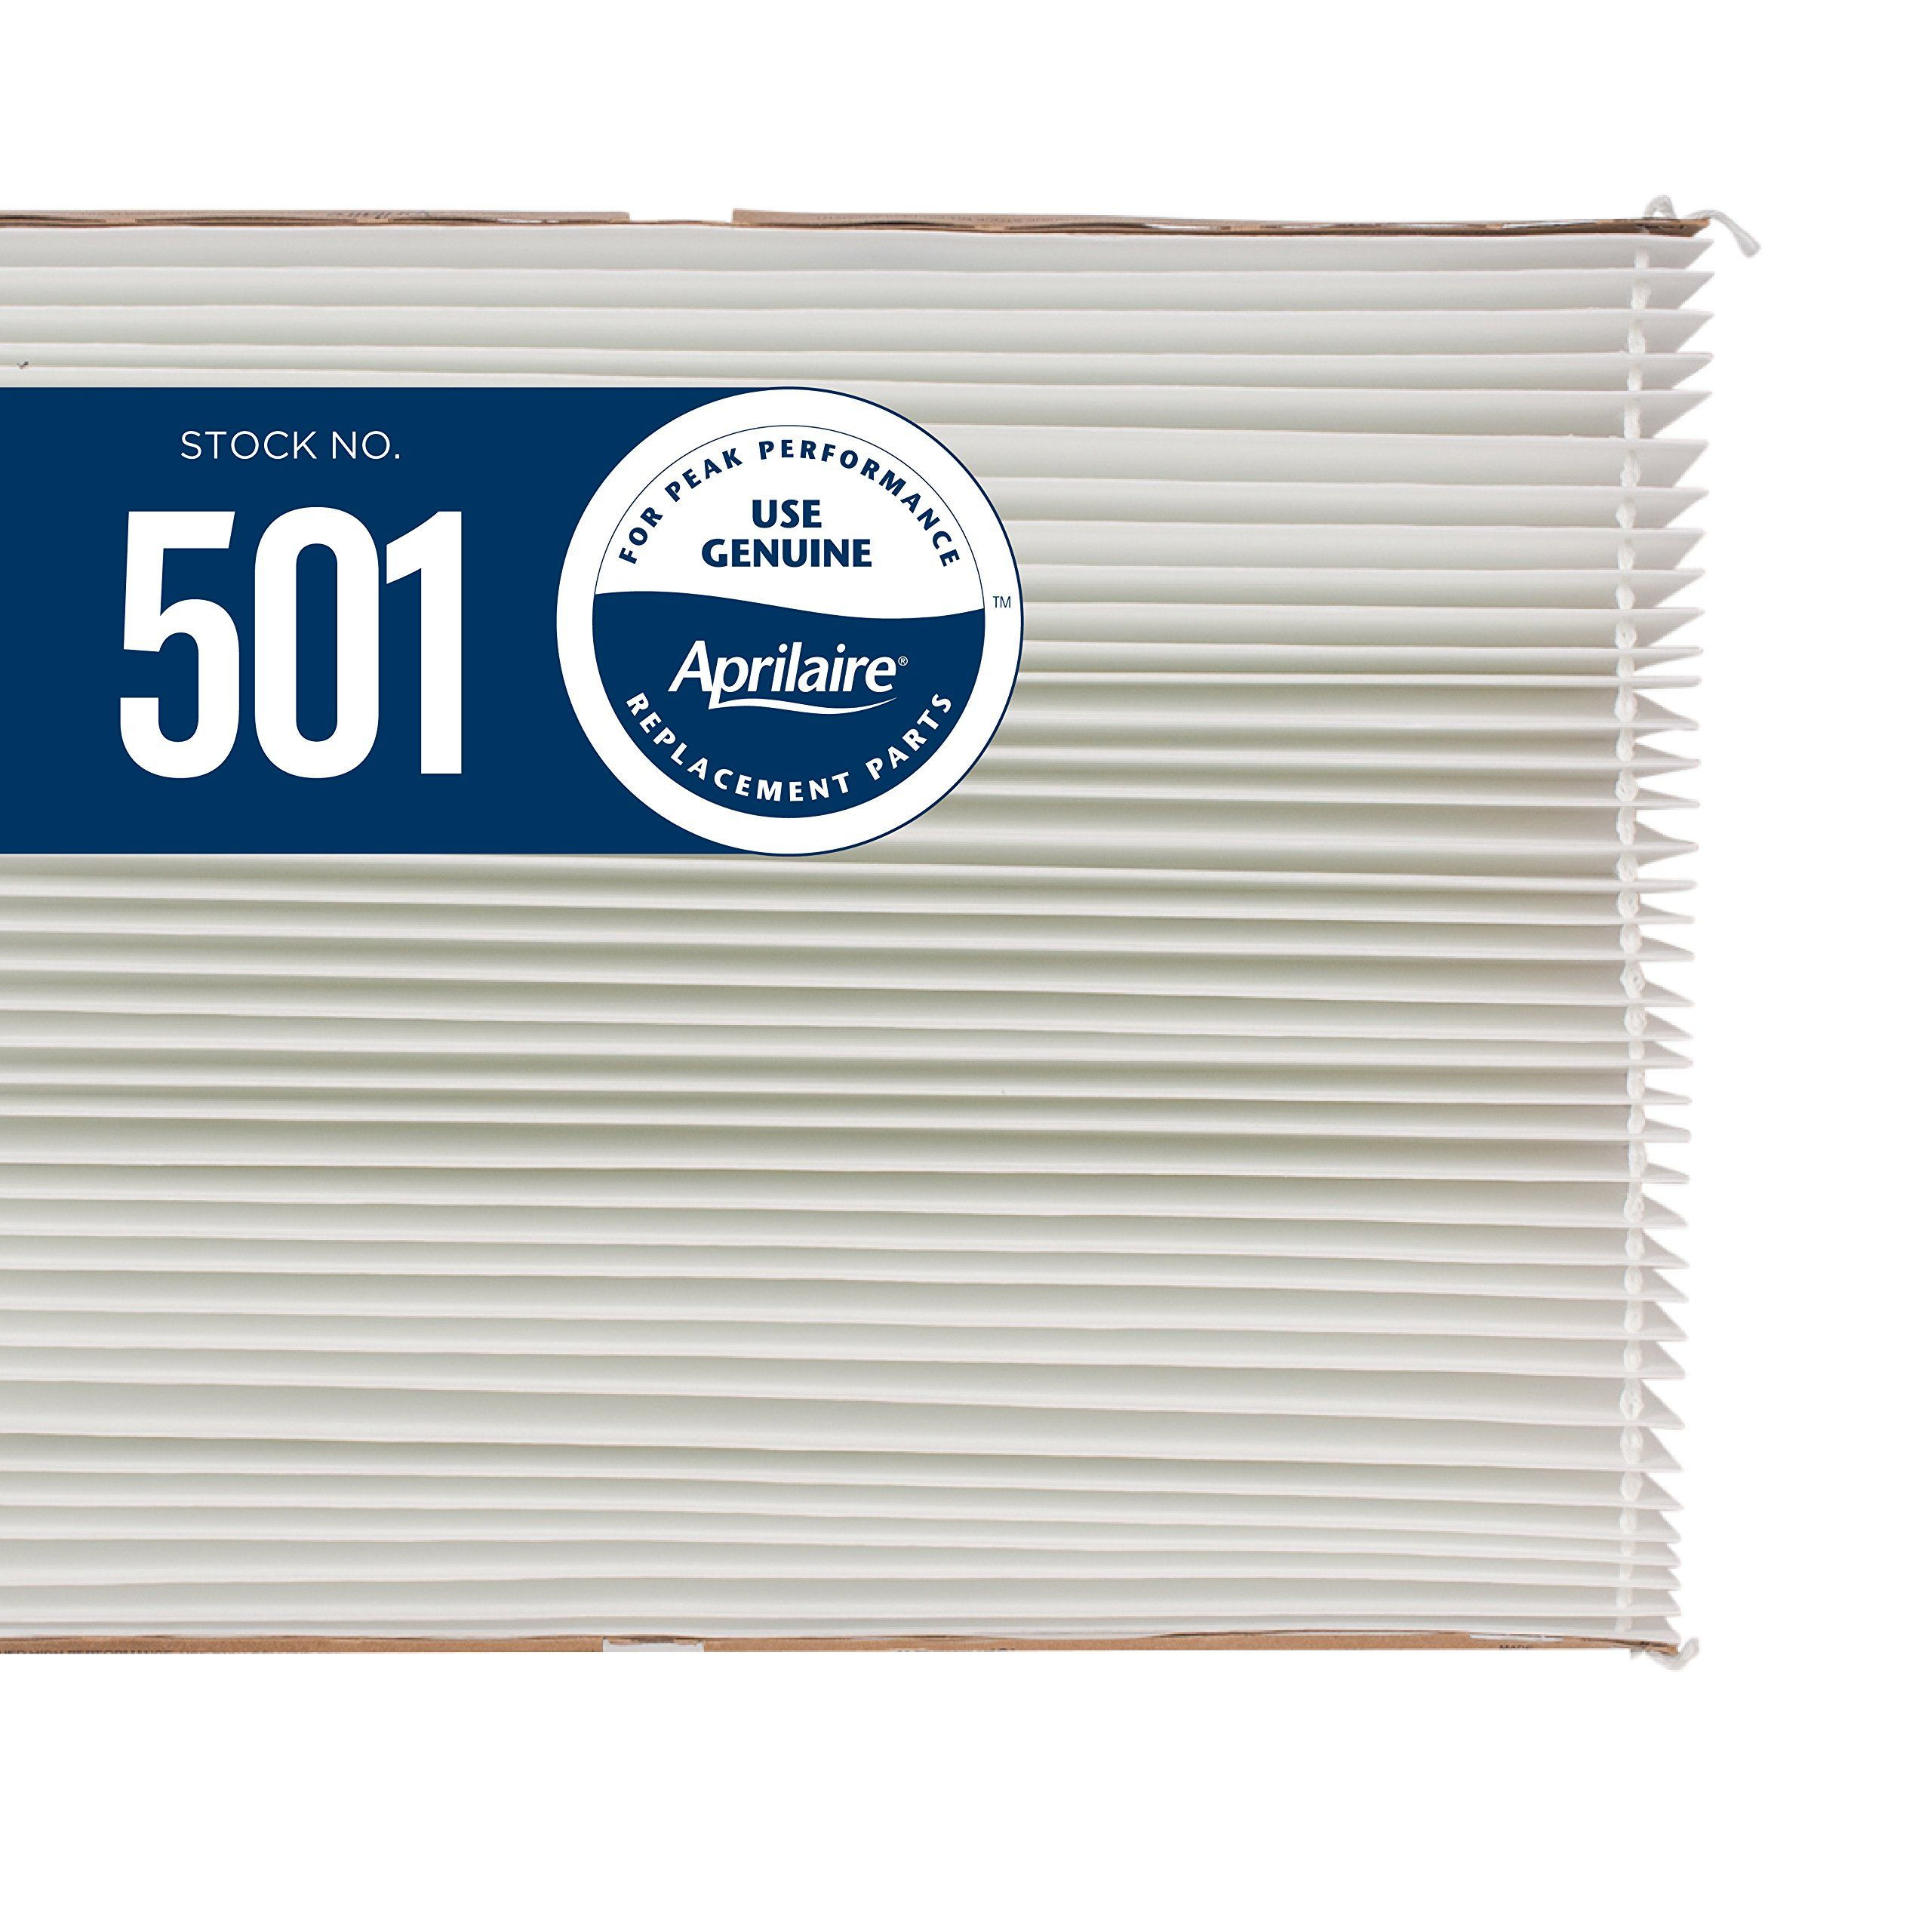 Aprilaire 501 Replacement Filter for Aprilaire Whole House